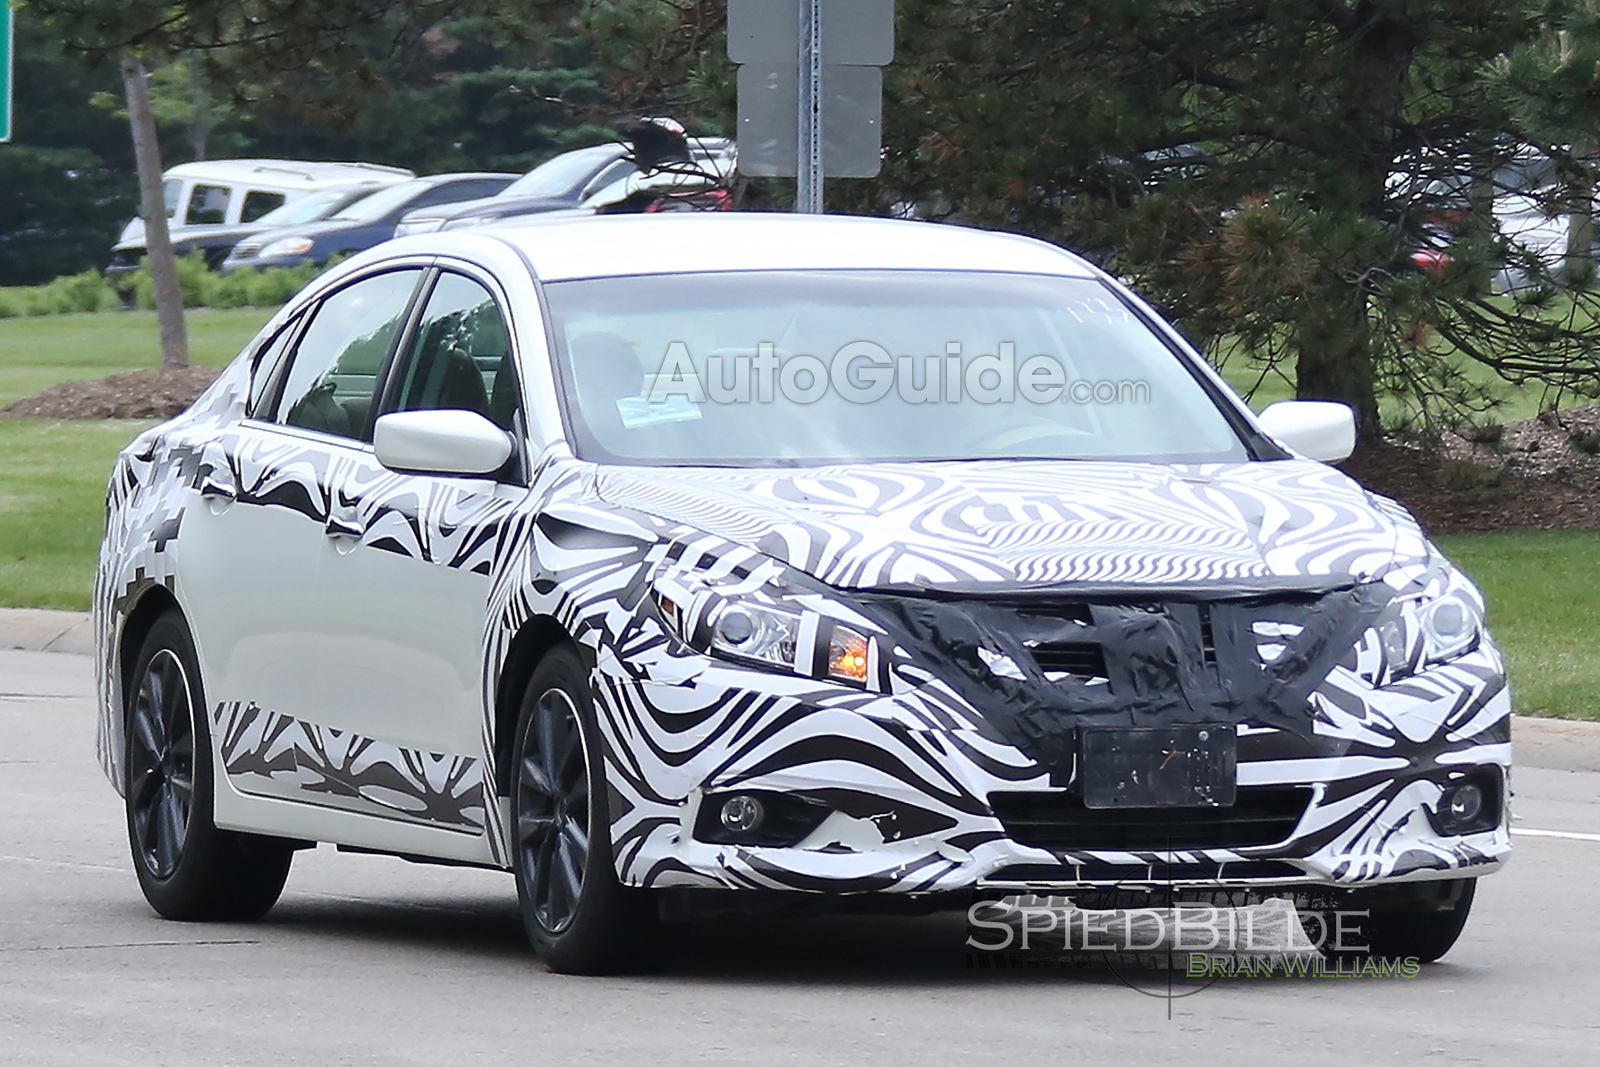 2016 Nissan Altima Faclift Spotted Testing